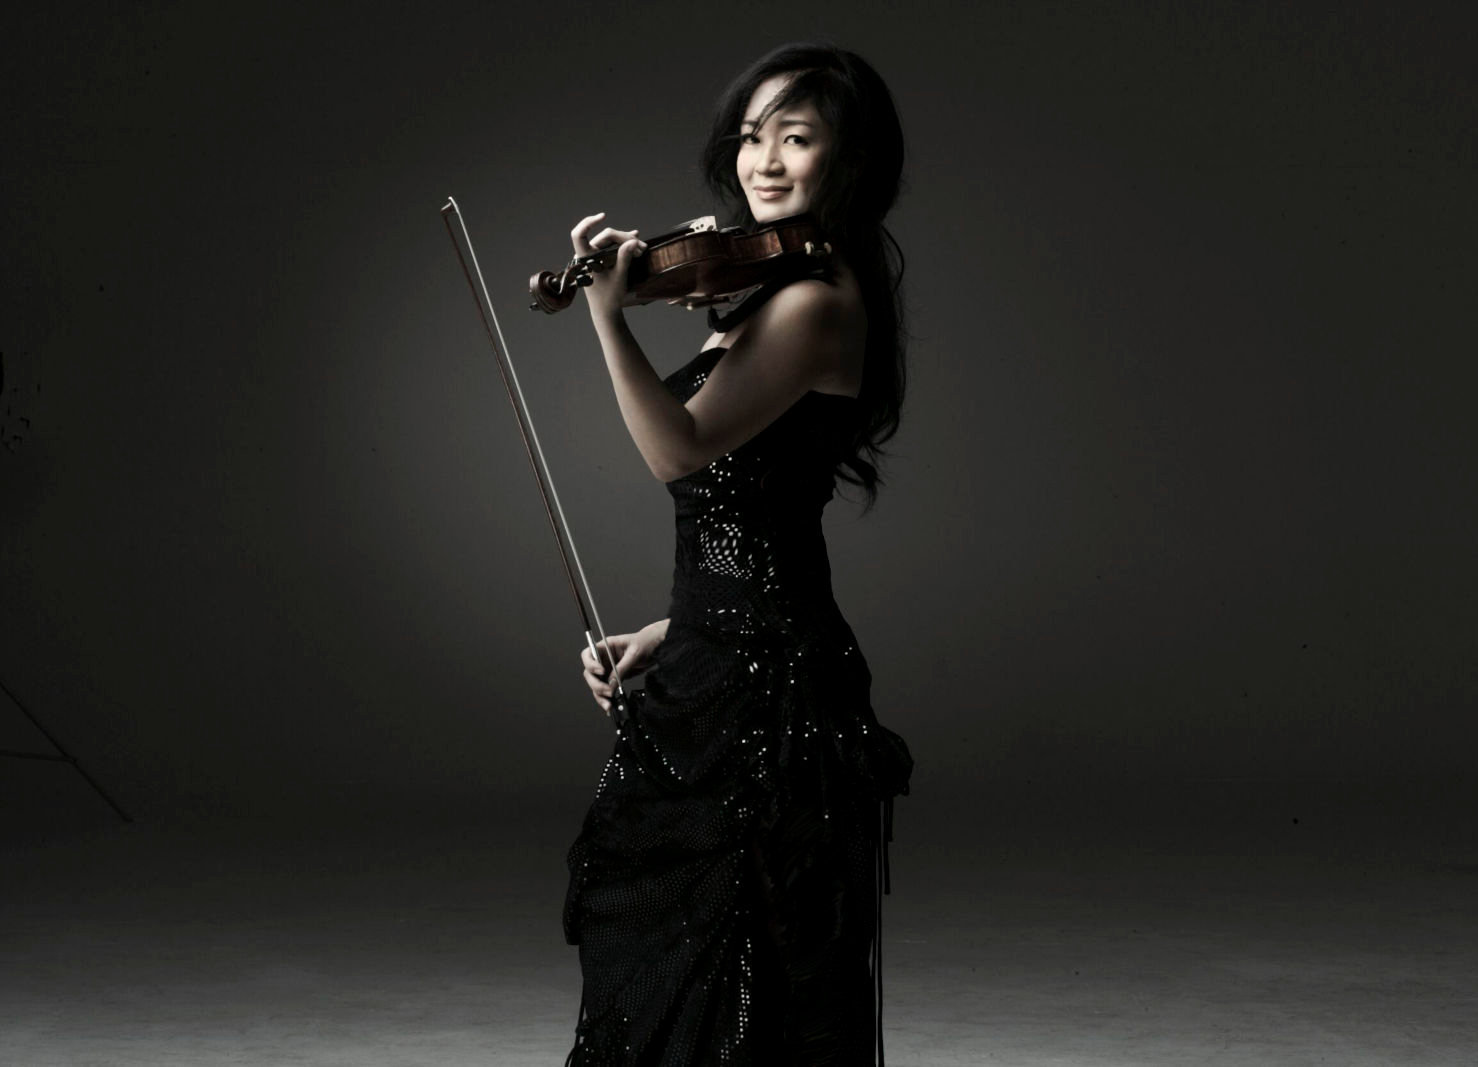 Chee-Yun holding violin wearing black dress